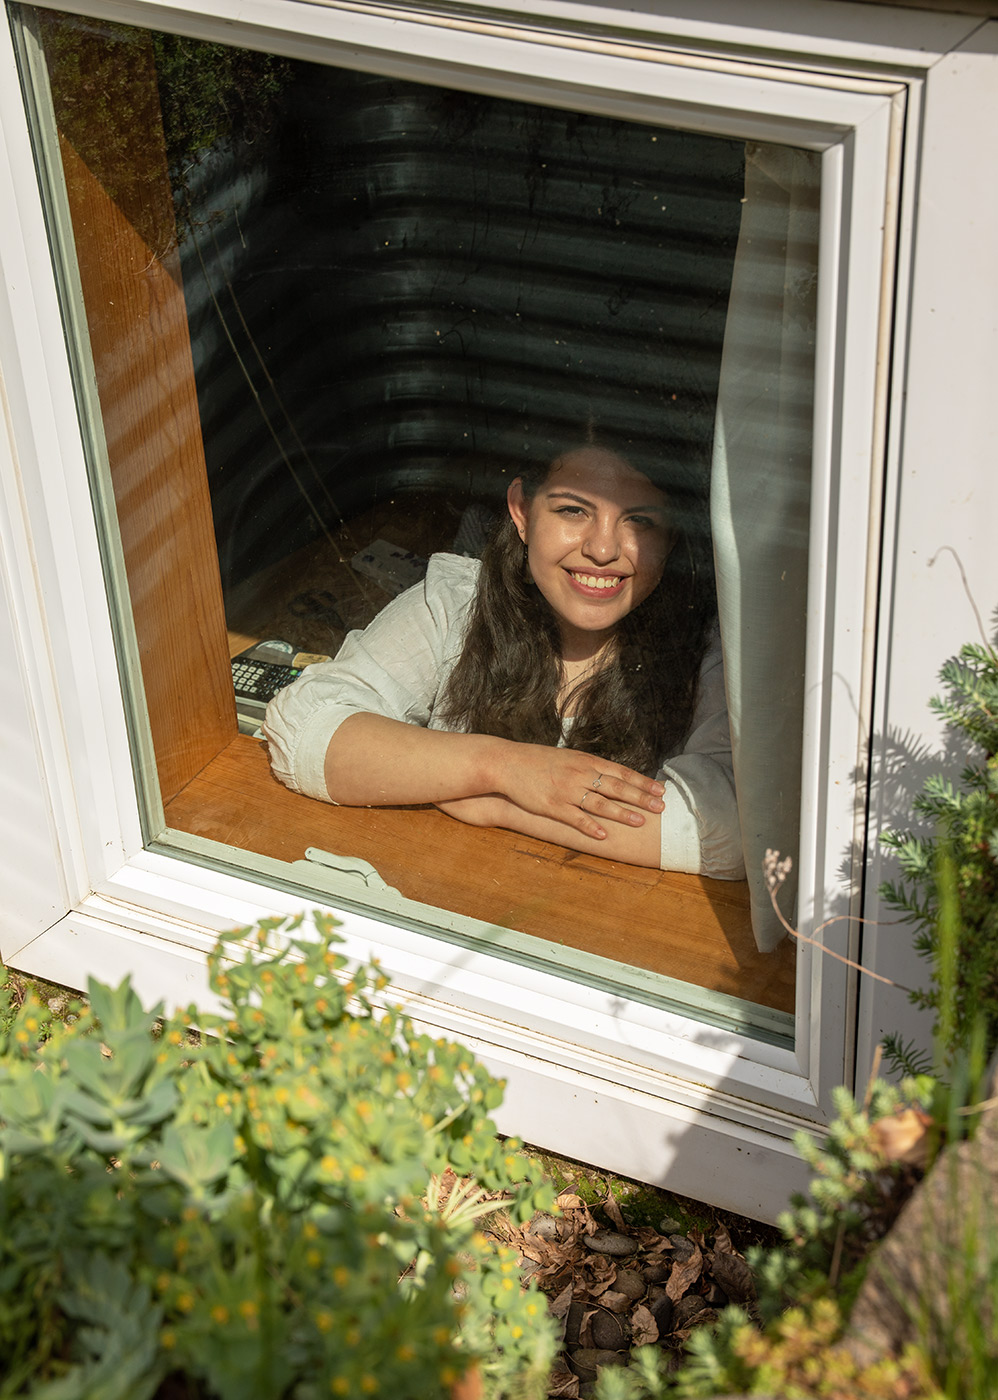 Documentary portrait of woman in her basement window